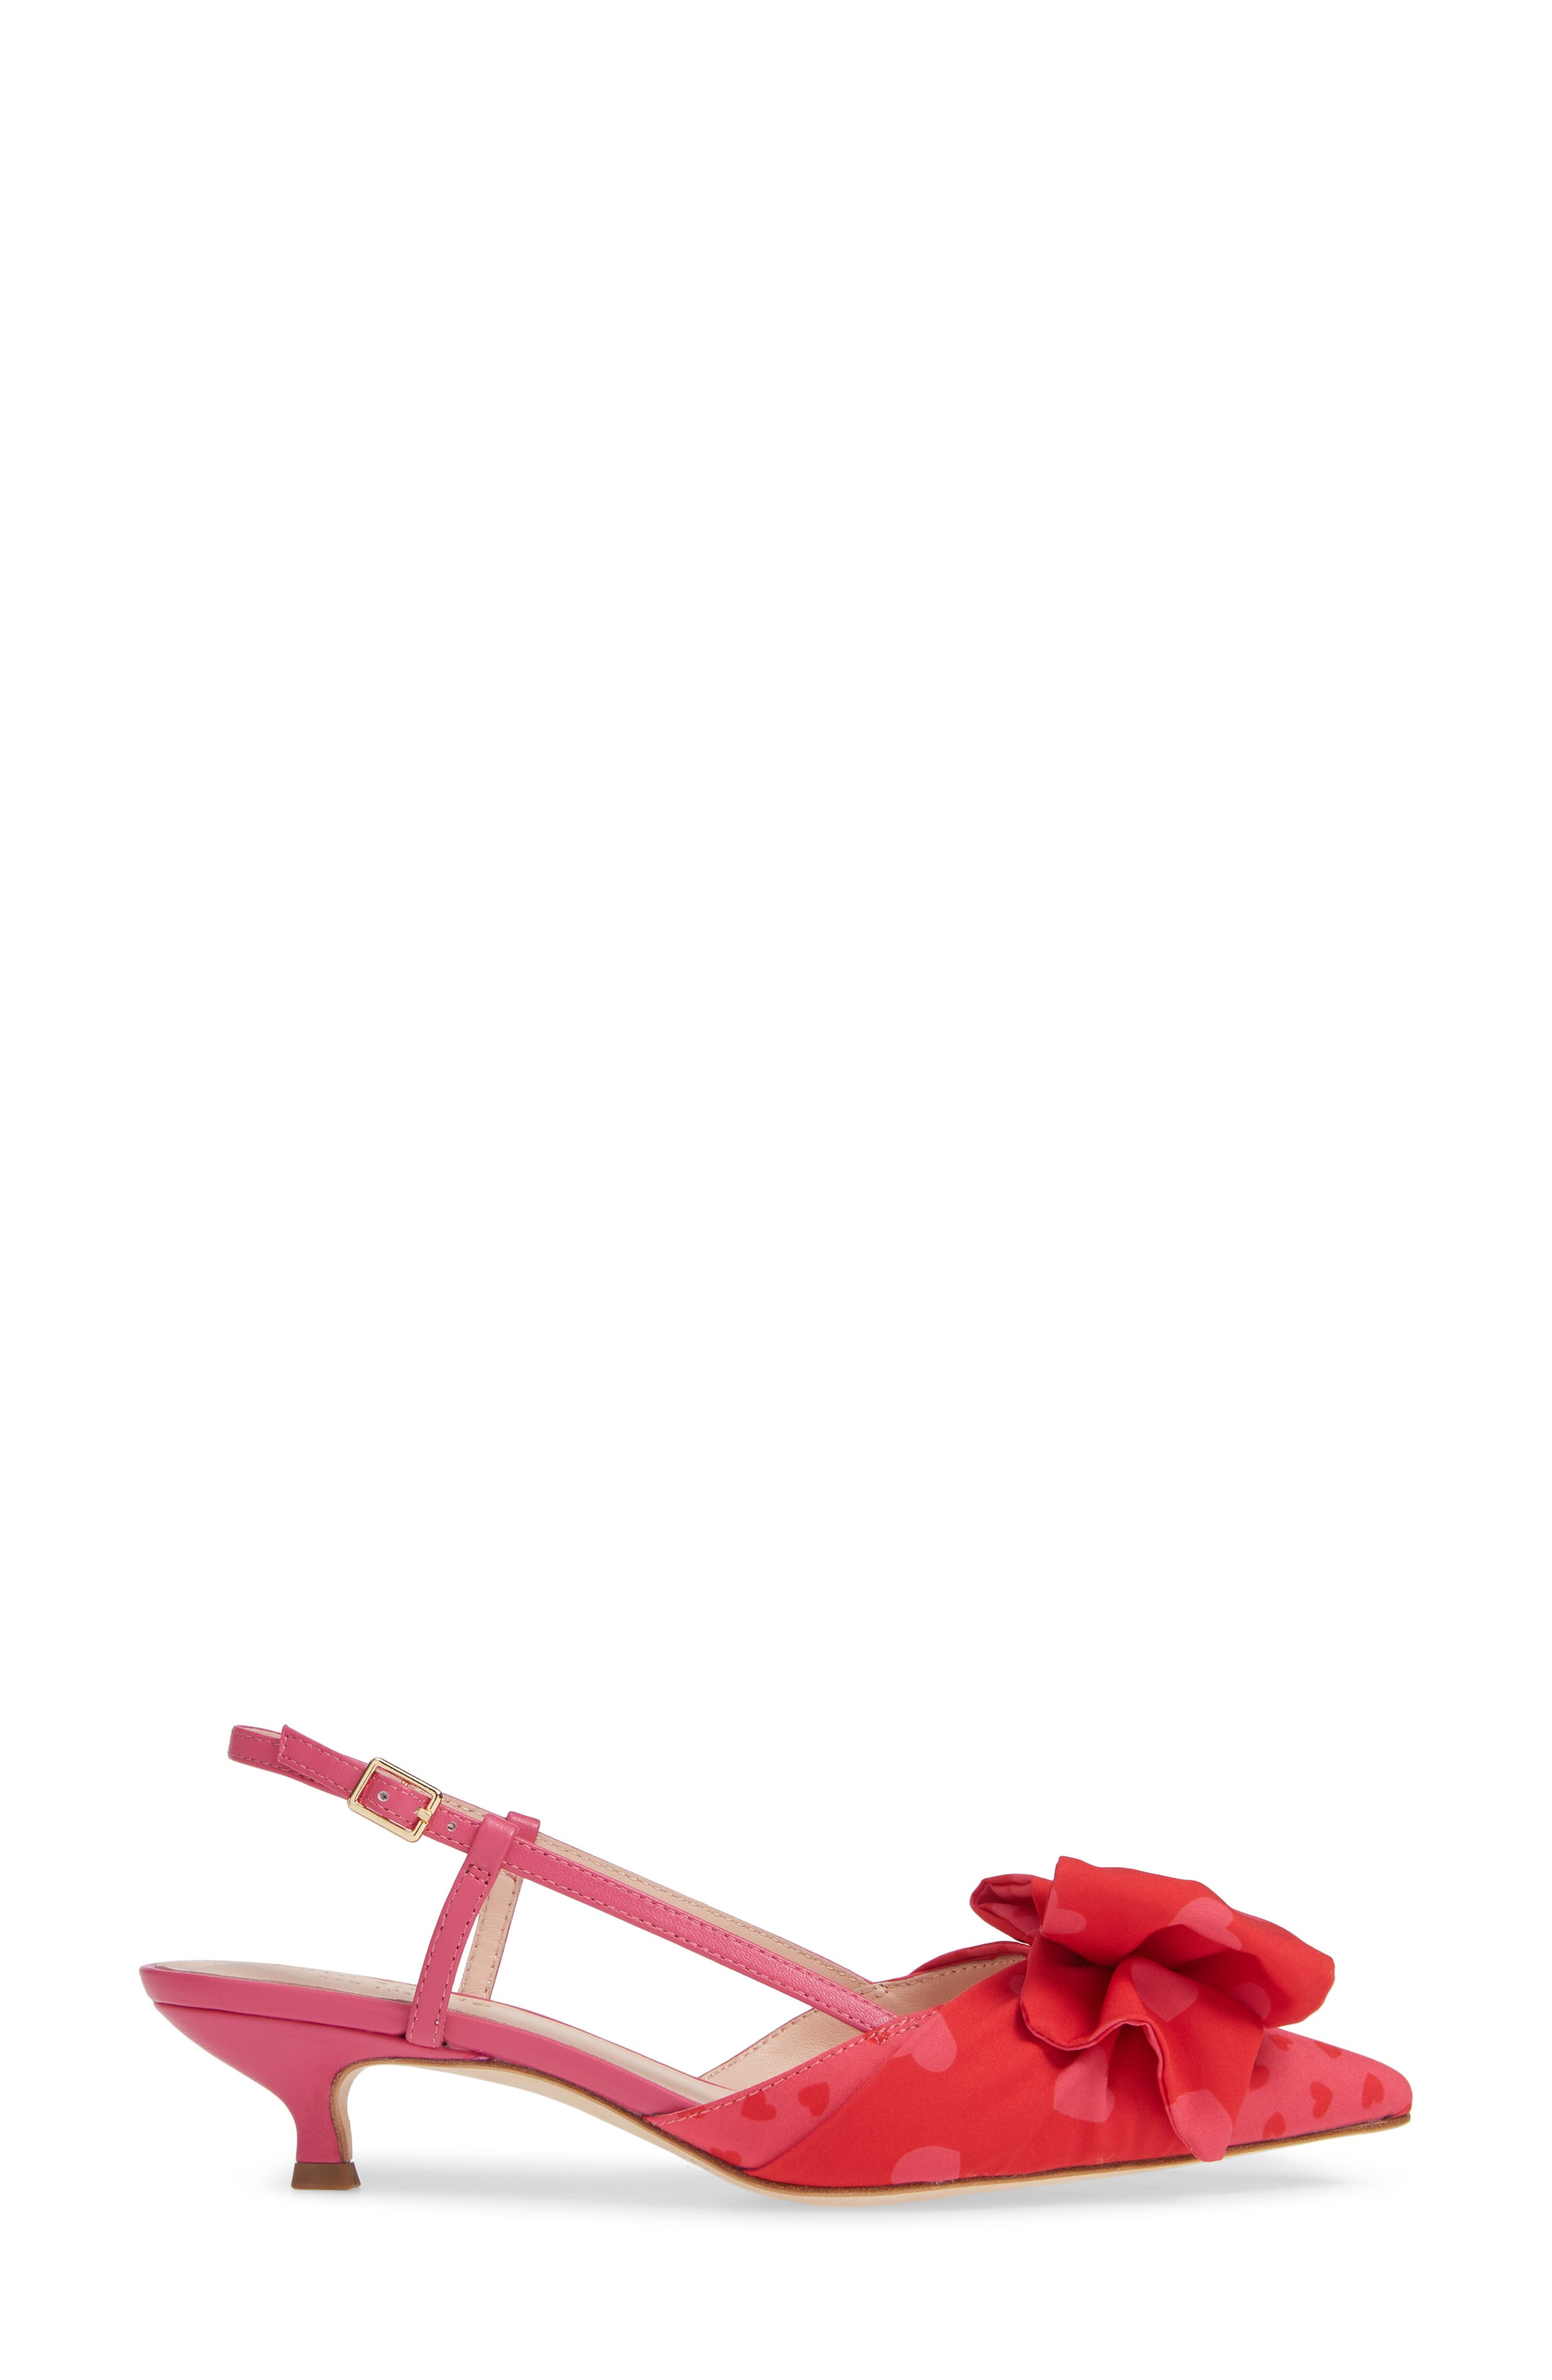 daxton slingback pump,                             Alternate thumbnail 3, color,                             BEGONIA/ ENGINE RED HEART